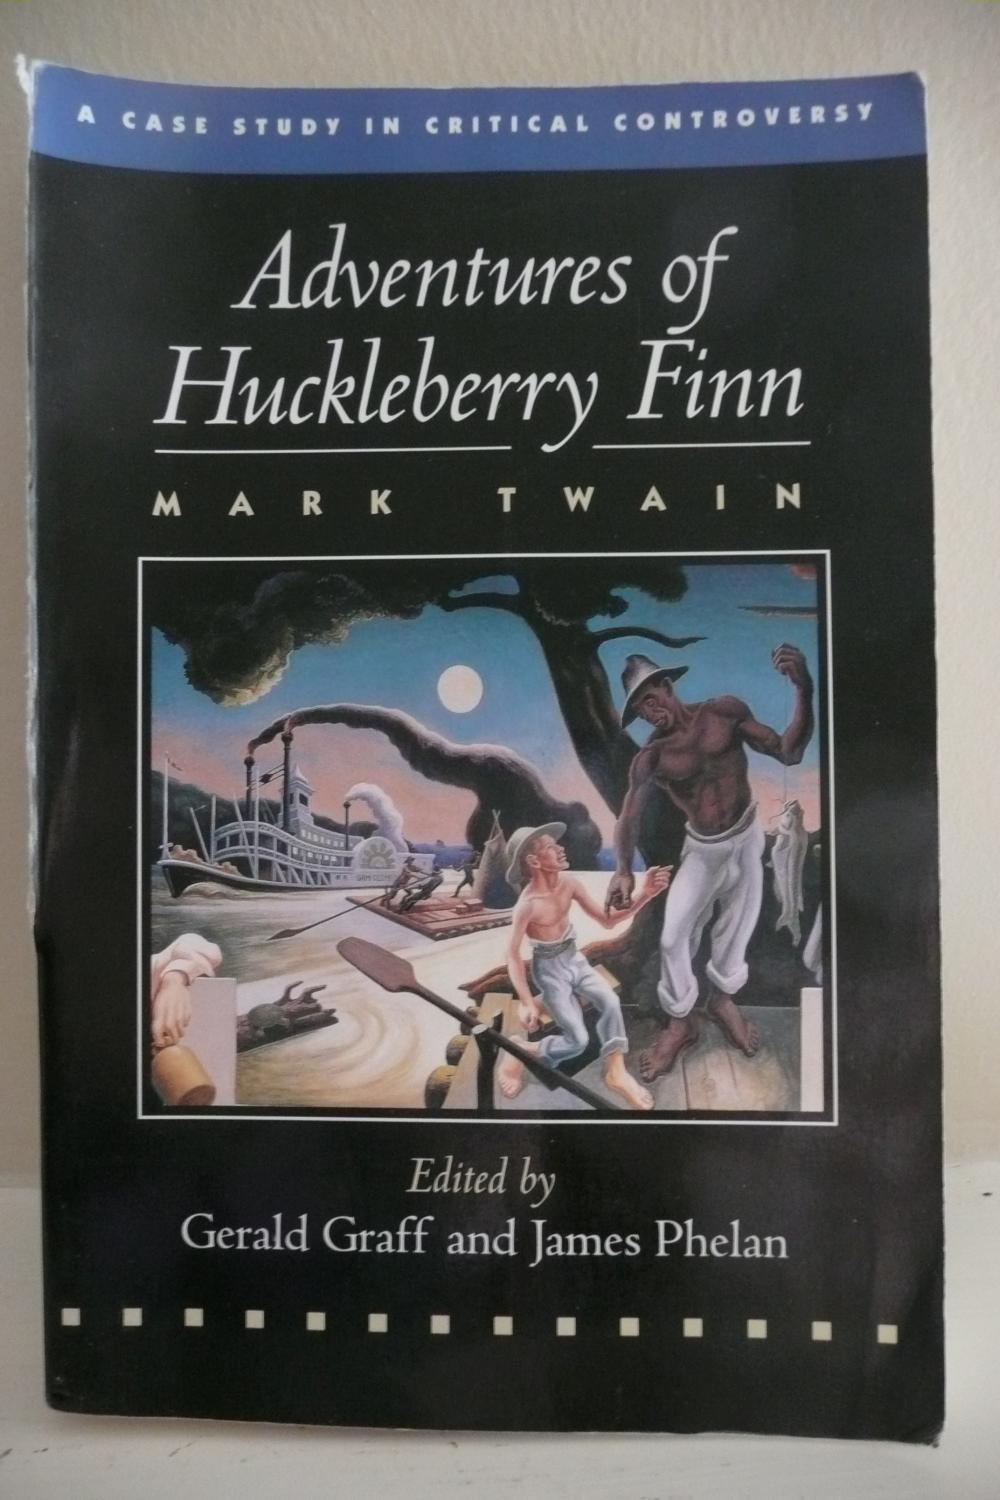 "adventures of huckleberry finn essay conclusion Each paragraph in the body of the essay must be 6-8 sentences in length "" ""in the novel the adventures of huckleberry finn conclusion paragraph."